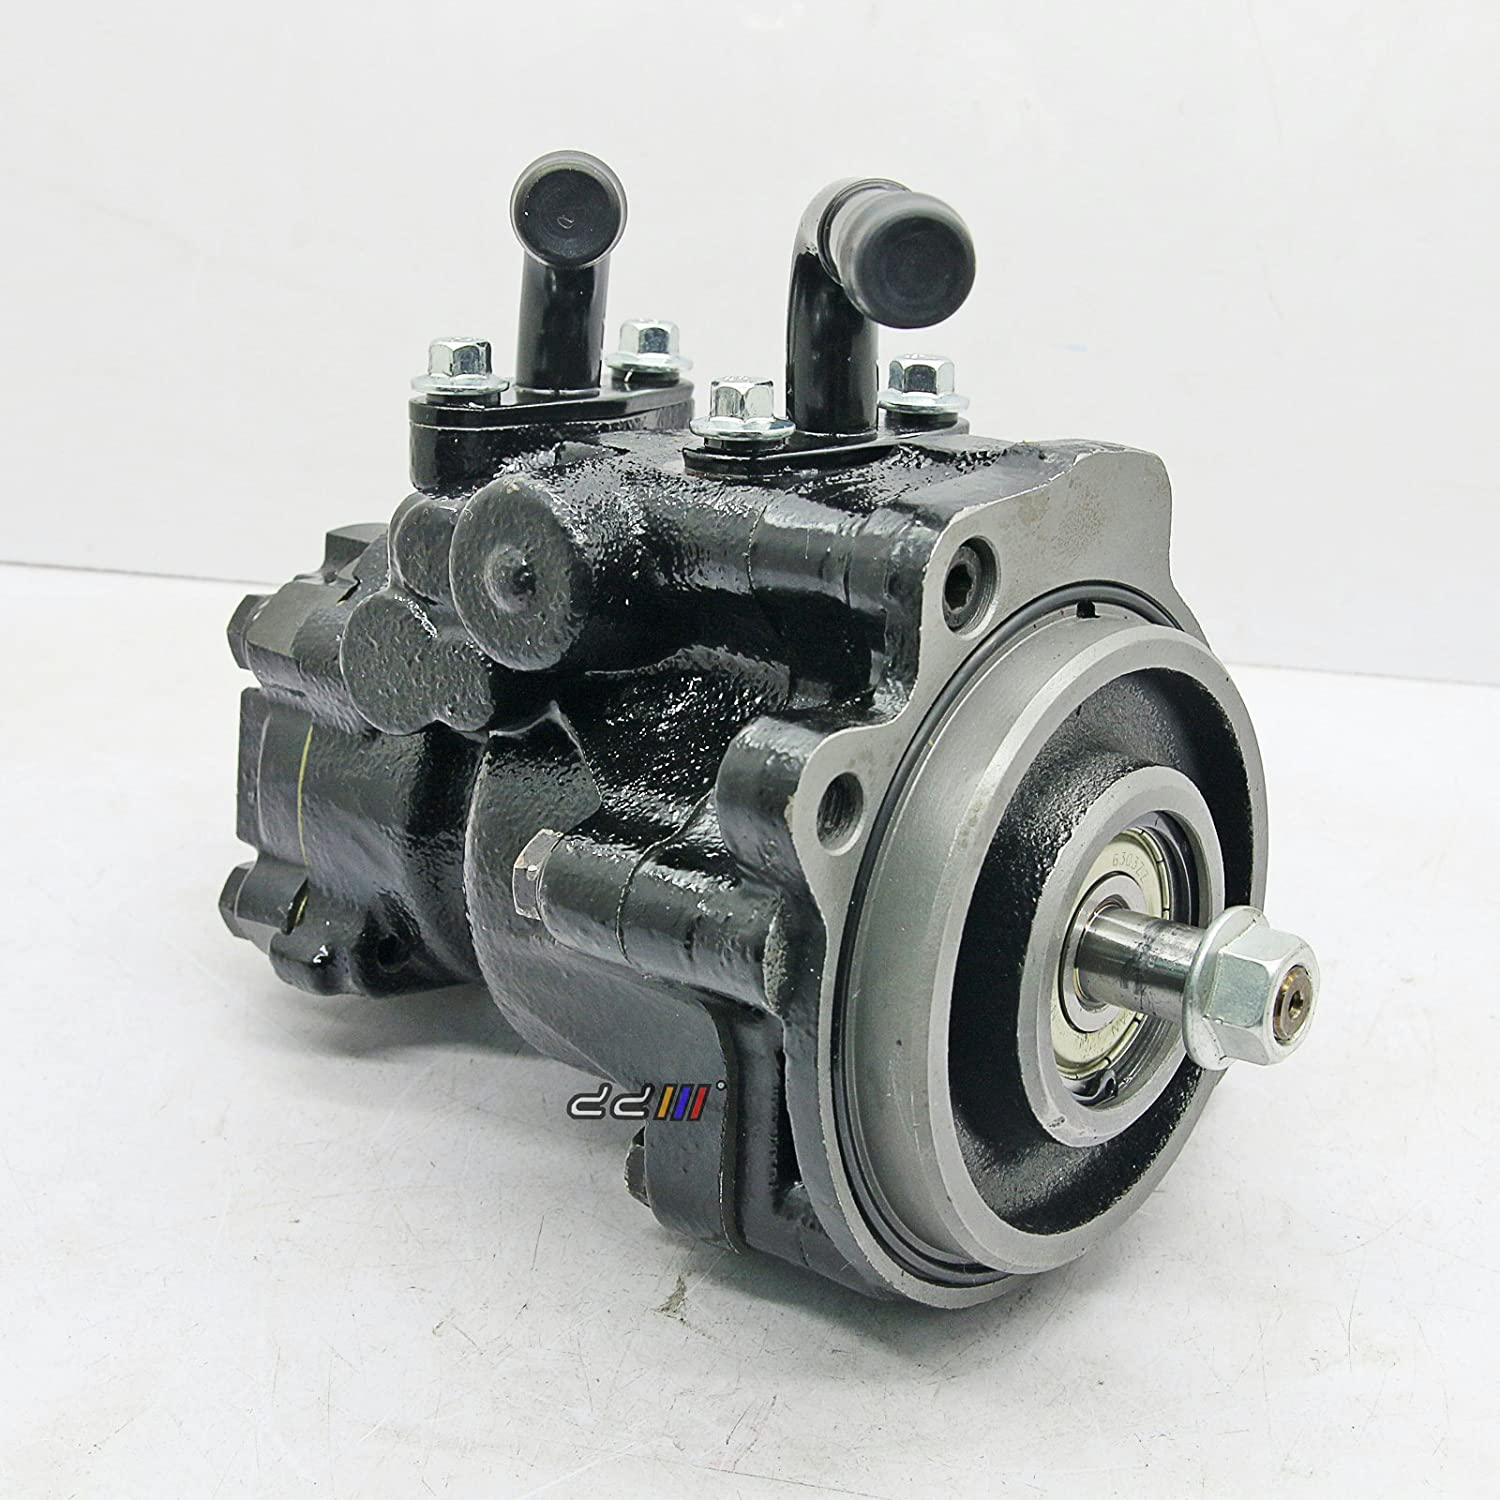 Power Steering Pump Fits Isuzu Elf NPR NPS NQR NQR450 NQR500 98-05 4.8L 4HE1-T